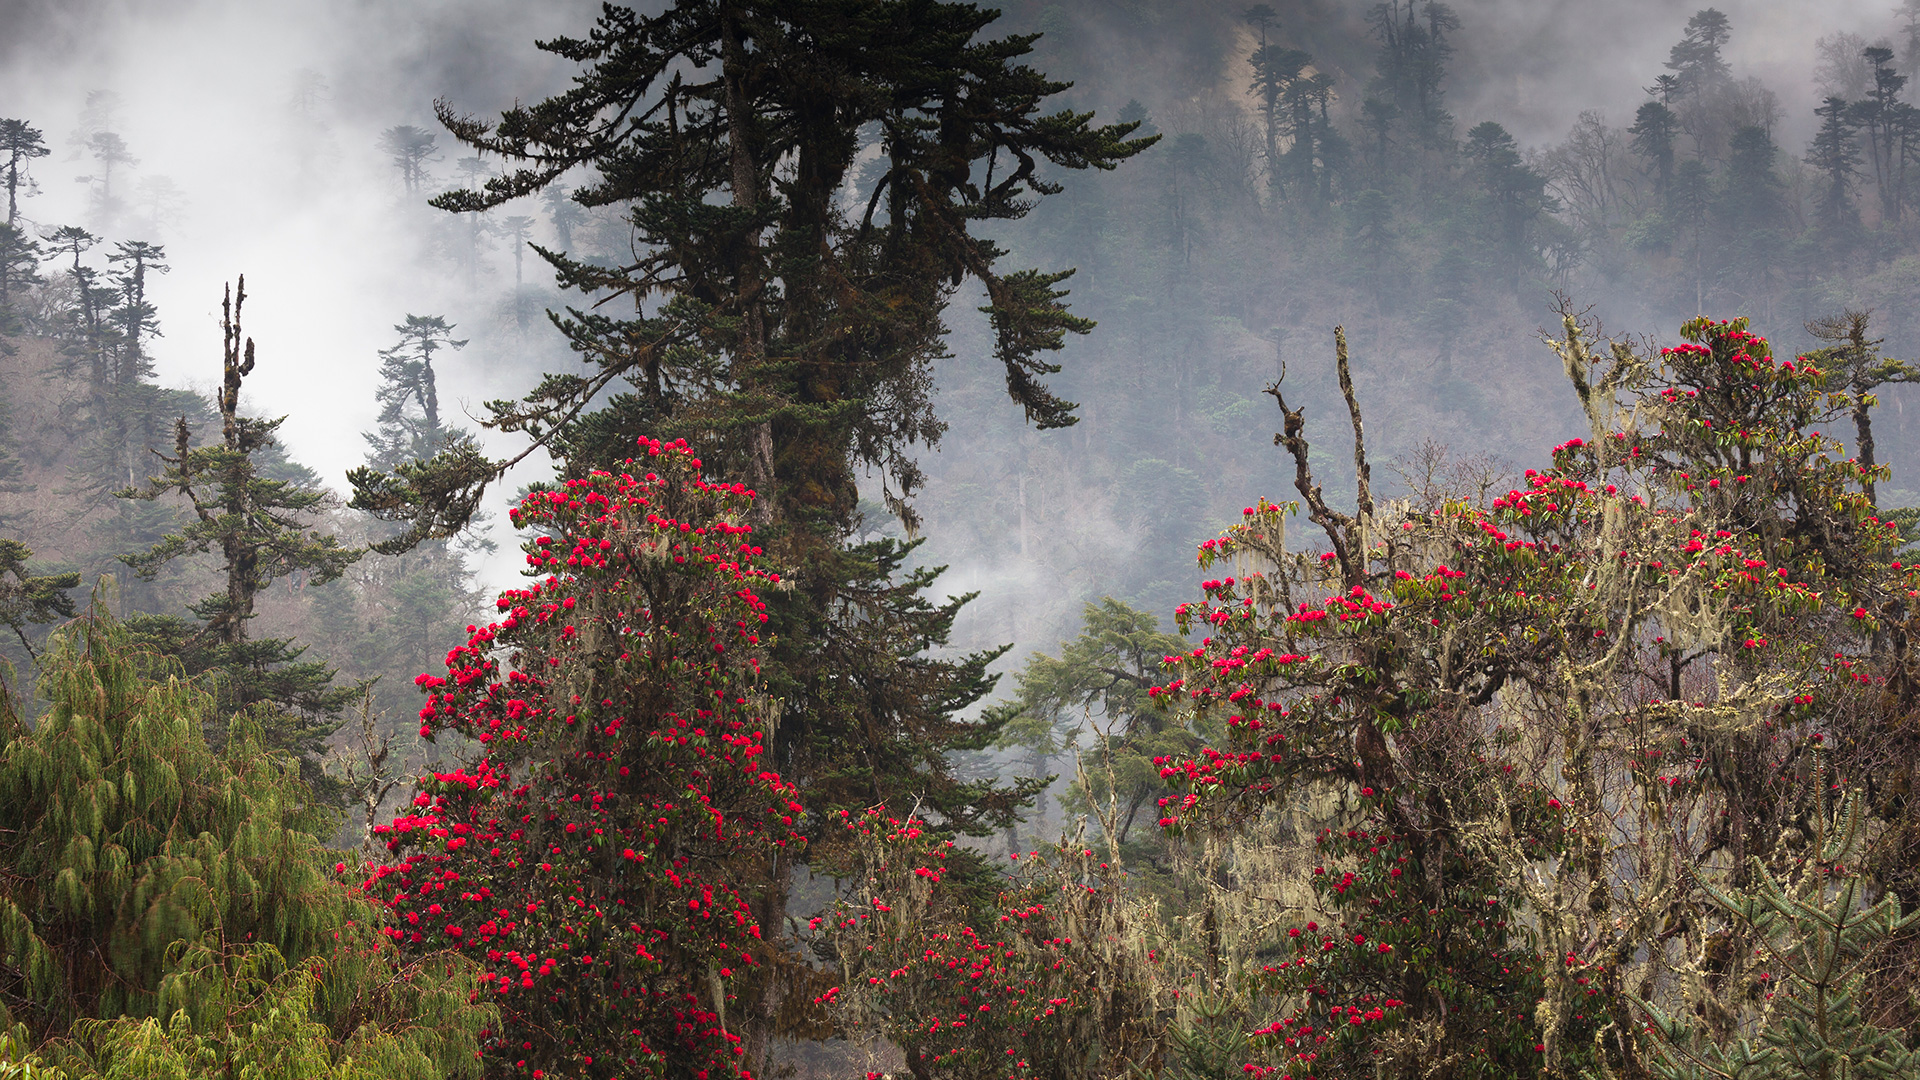 Rhododendrons in bloom in the forests of Bhutan